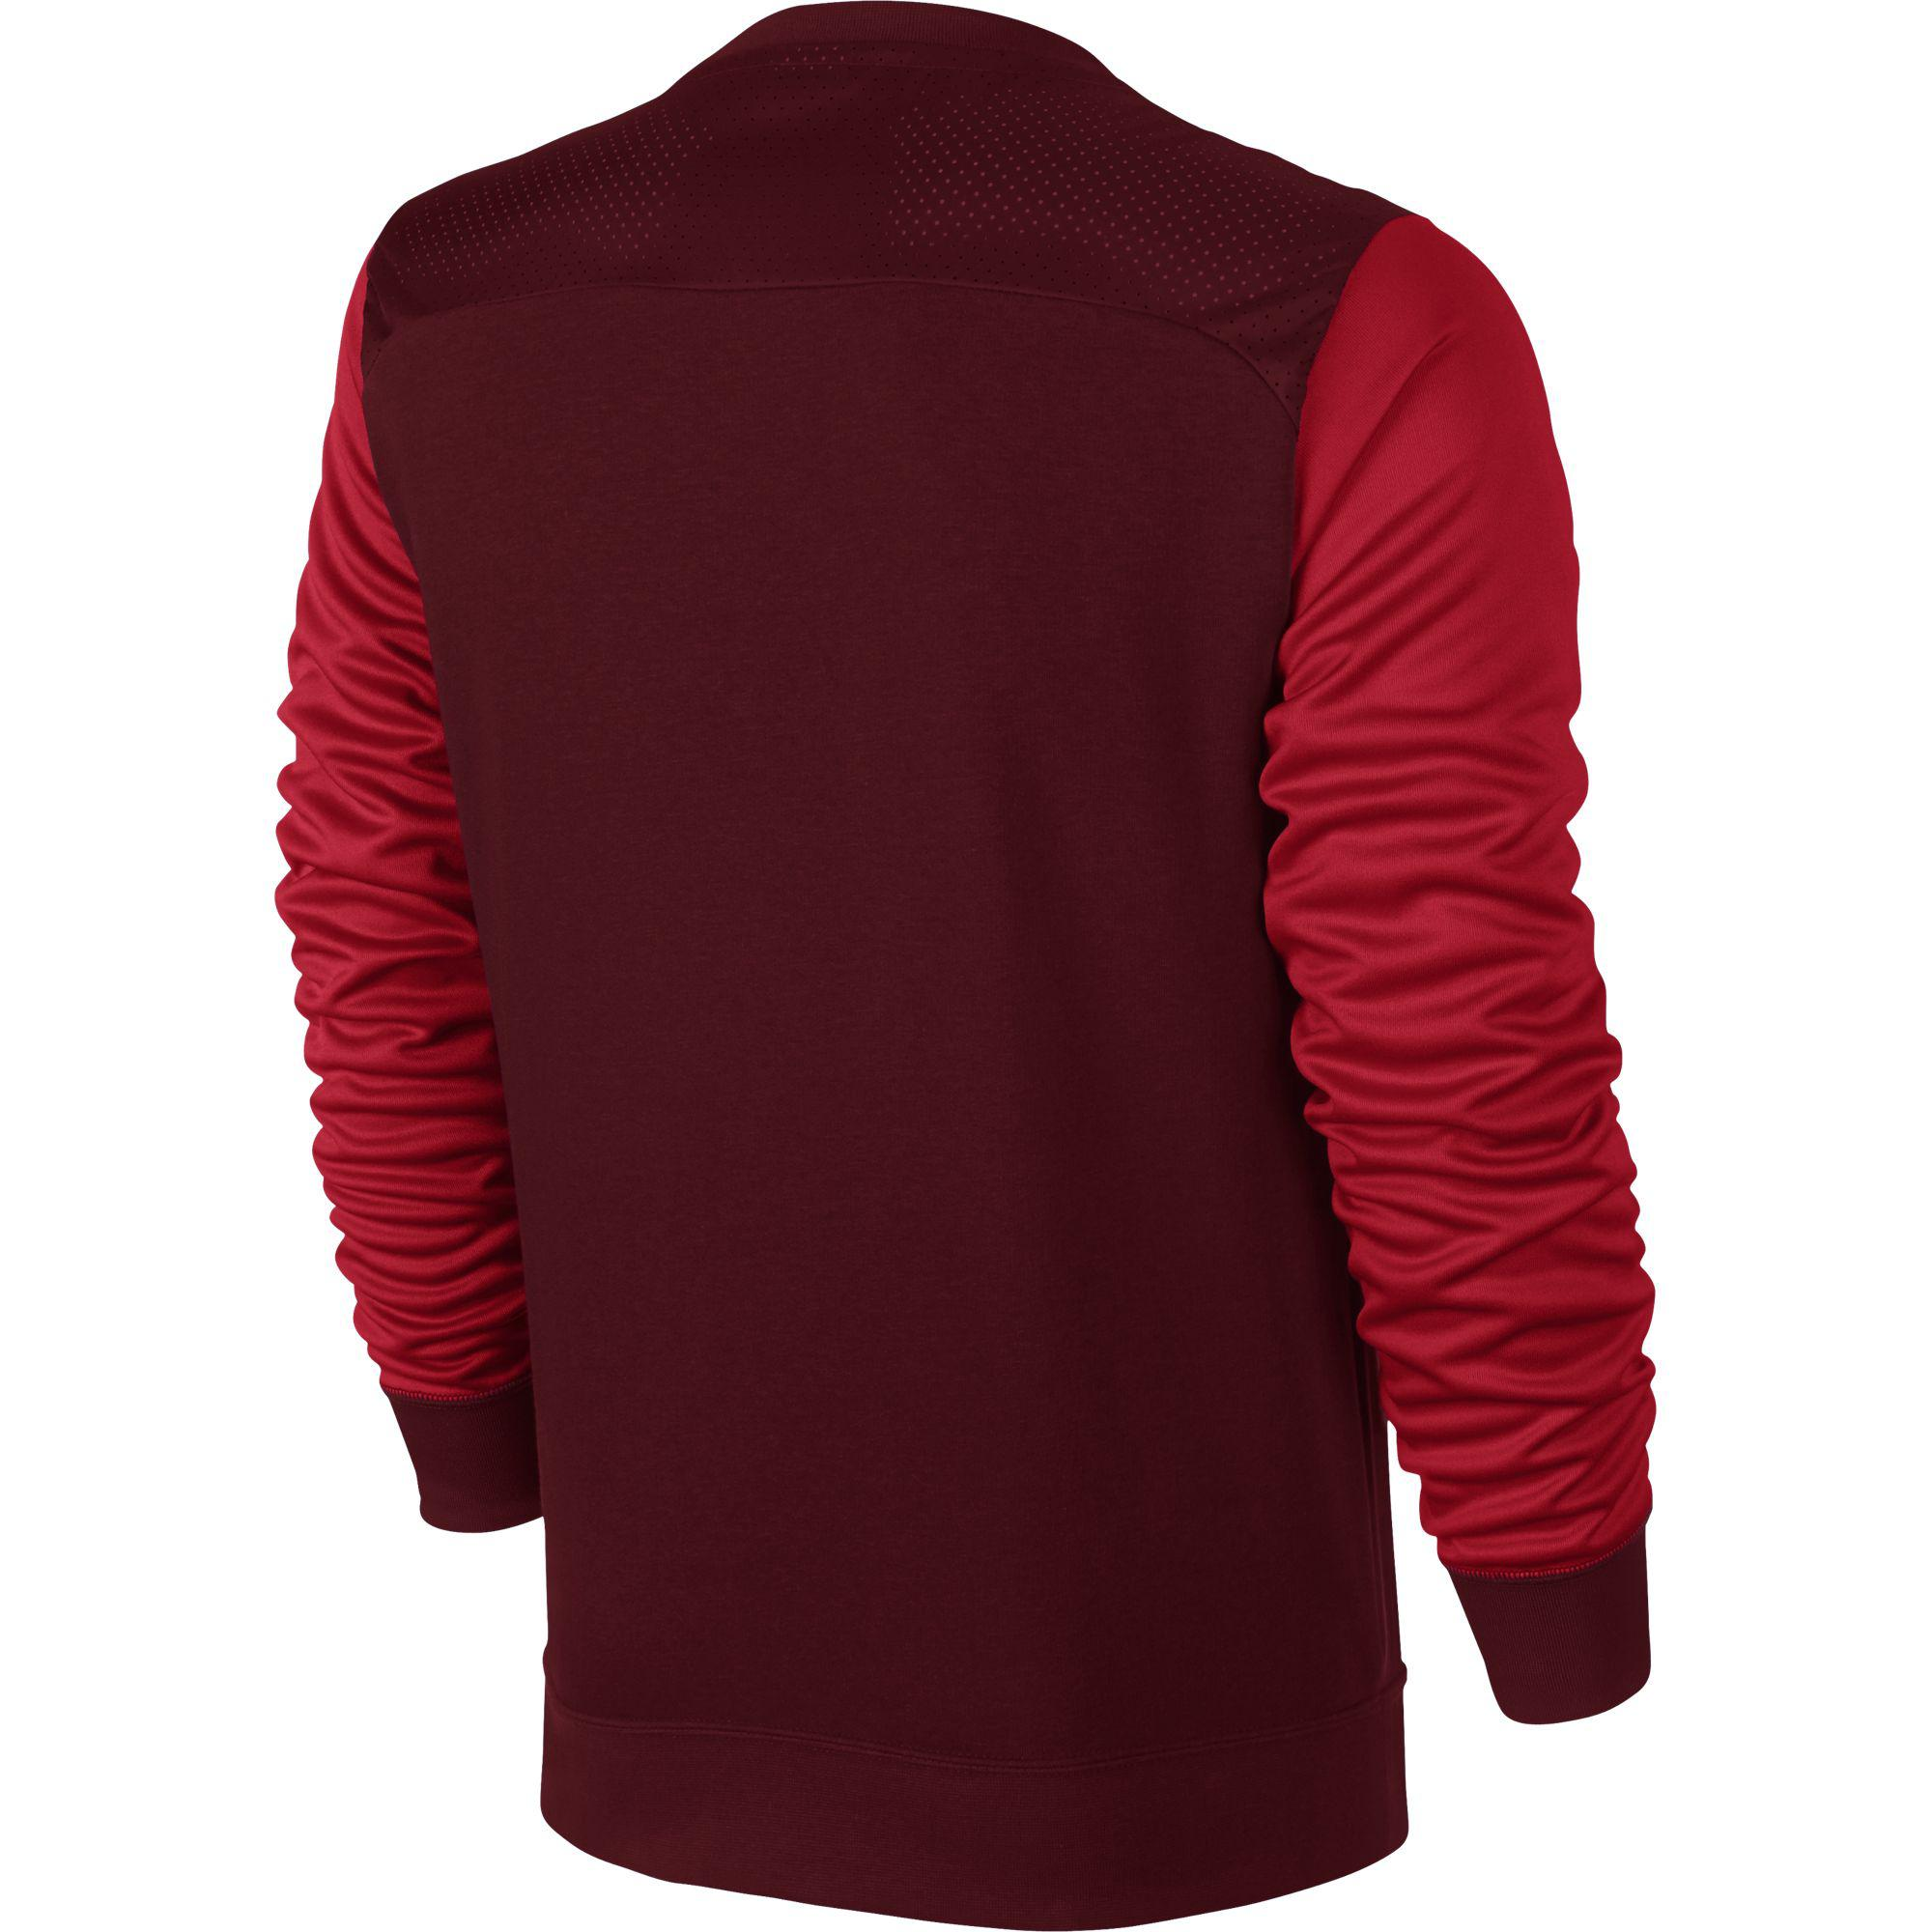 30a74bf65 Nike Mens Air Hybrid Fleece Crew Long Sleeve Top - Red - Tennisnuts.com